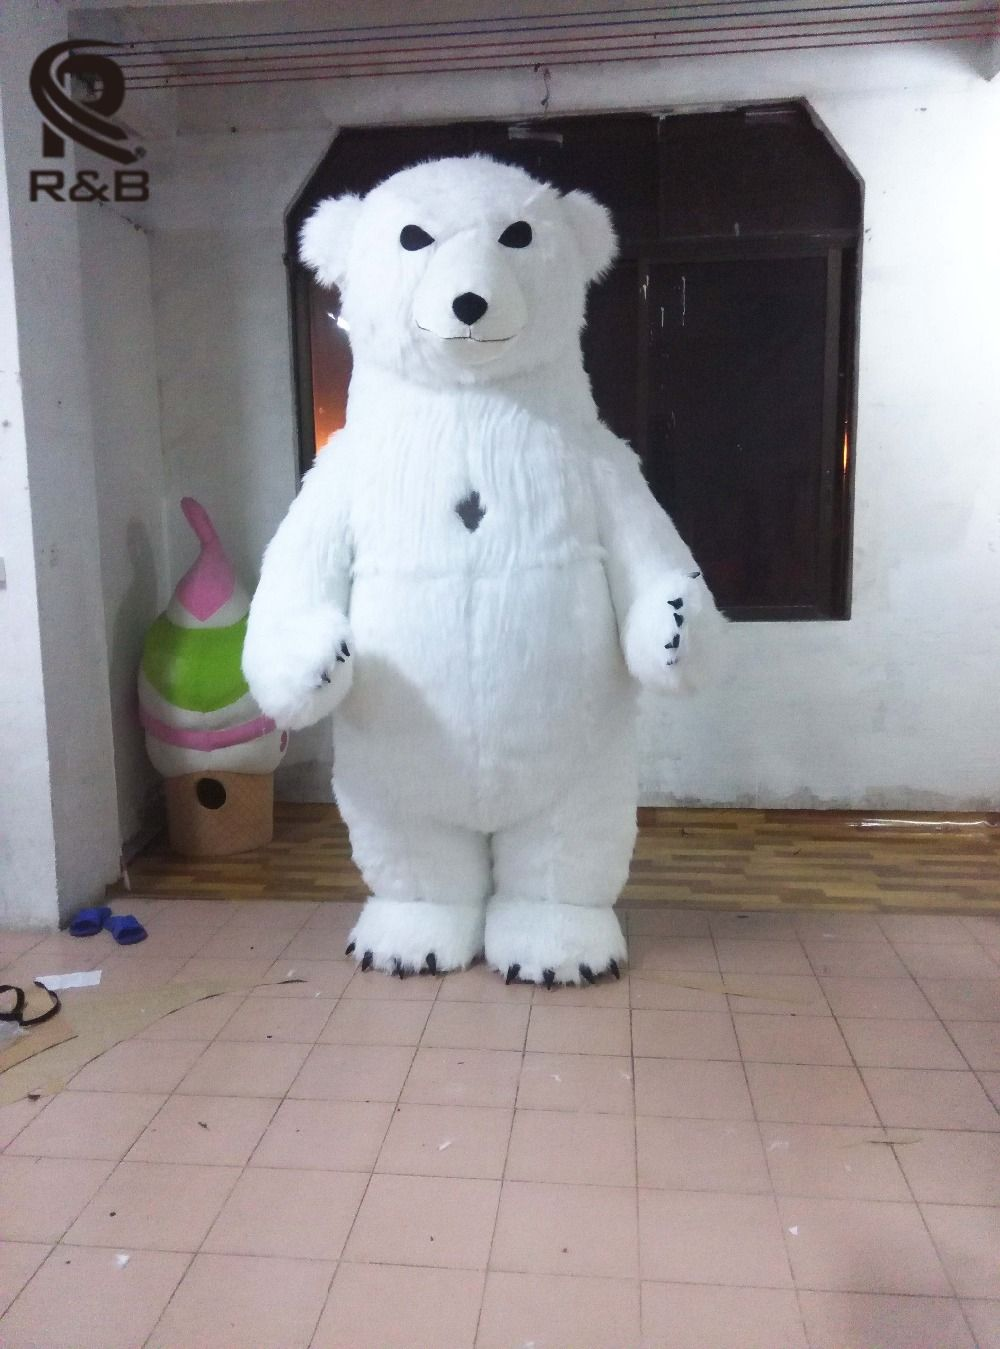 New Style Inflatable Costume Inflatable Polar Bear For Advertising 2M Tall Customize For Adult Suitable For 1.6m To 1.8m Adult